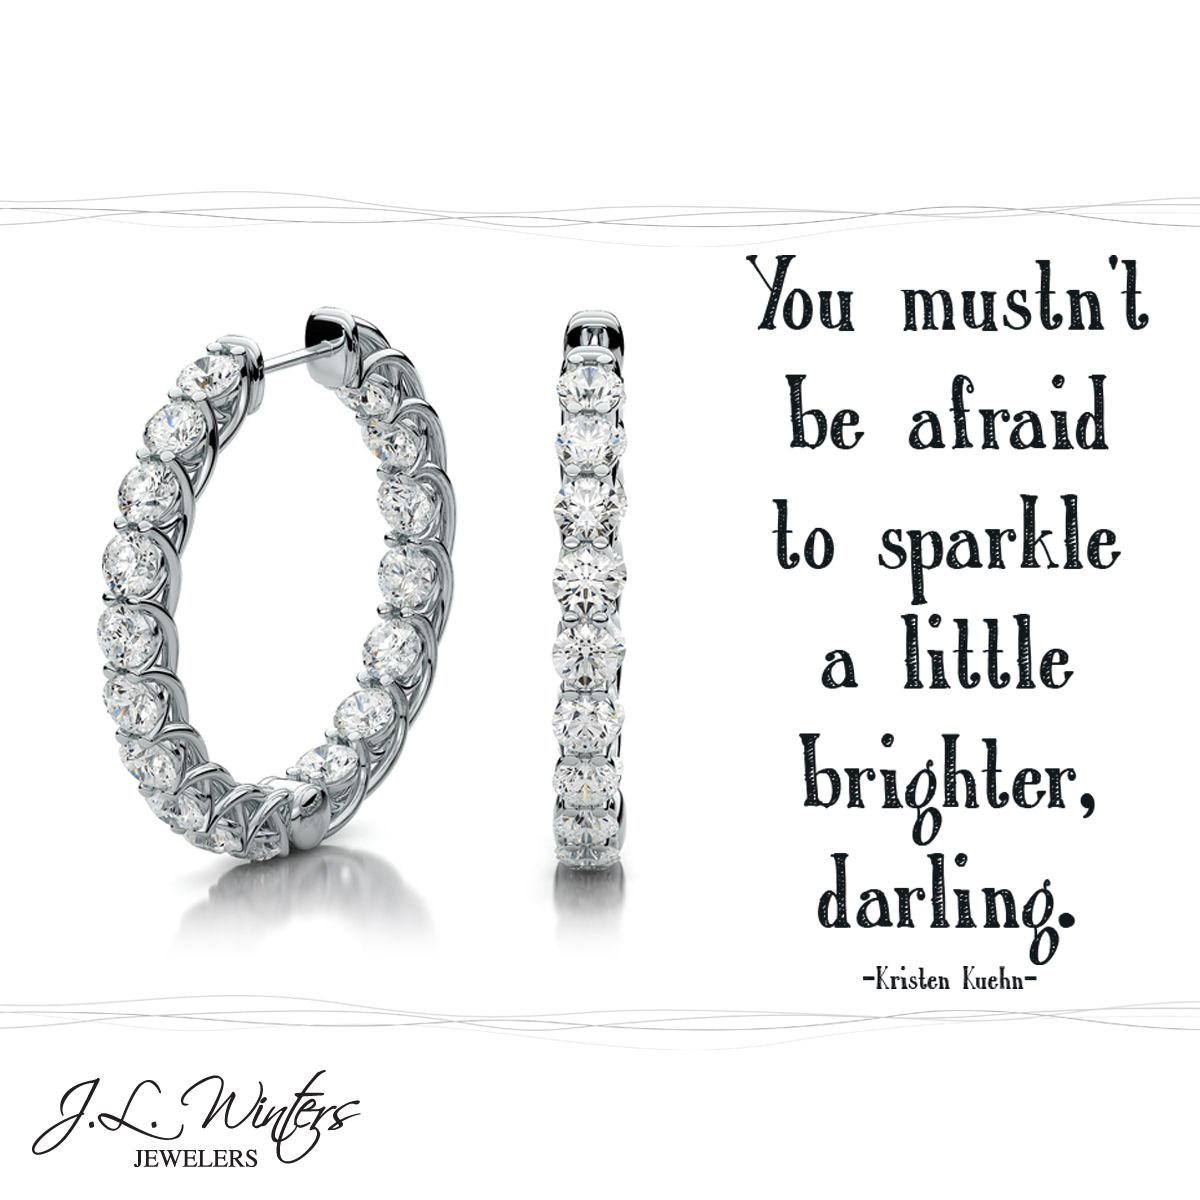 What makes you sparkle? #Sparkle #Diamonds #HoopEarrings